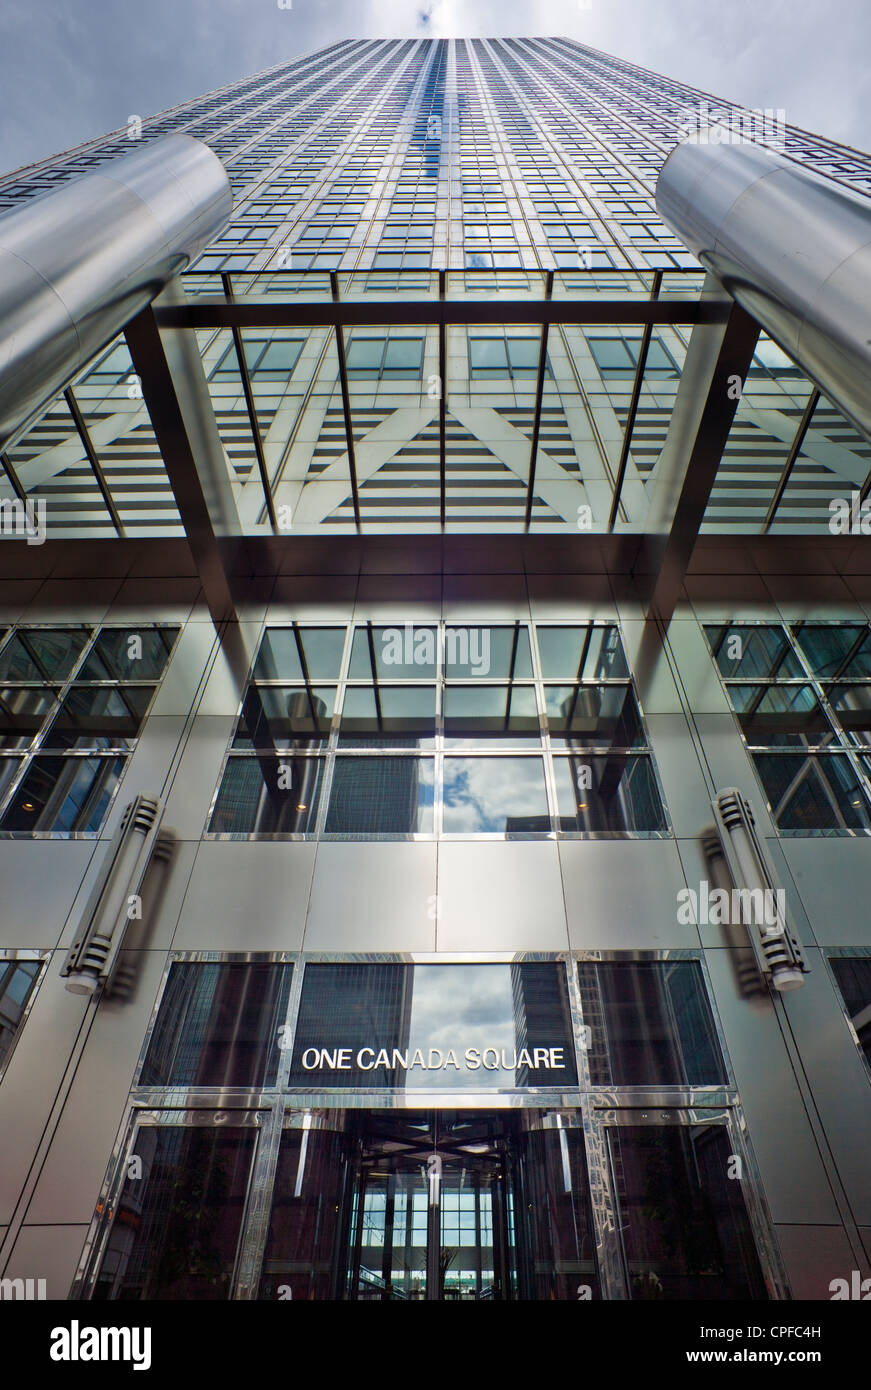 One Canada Square, Canary Wharf, London. - Stock Image